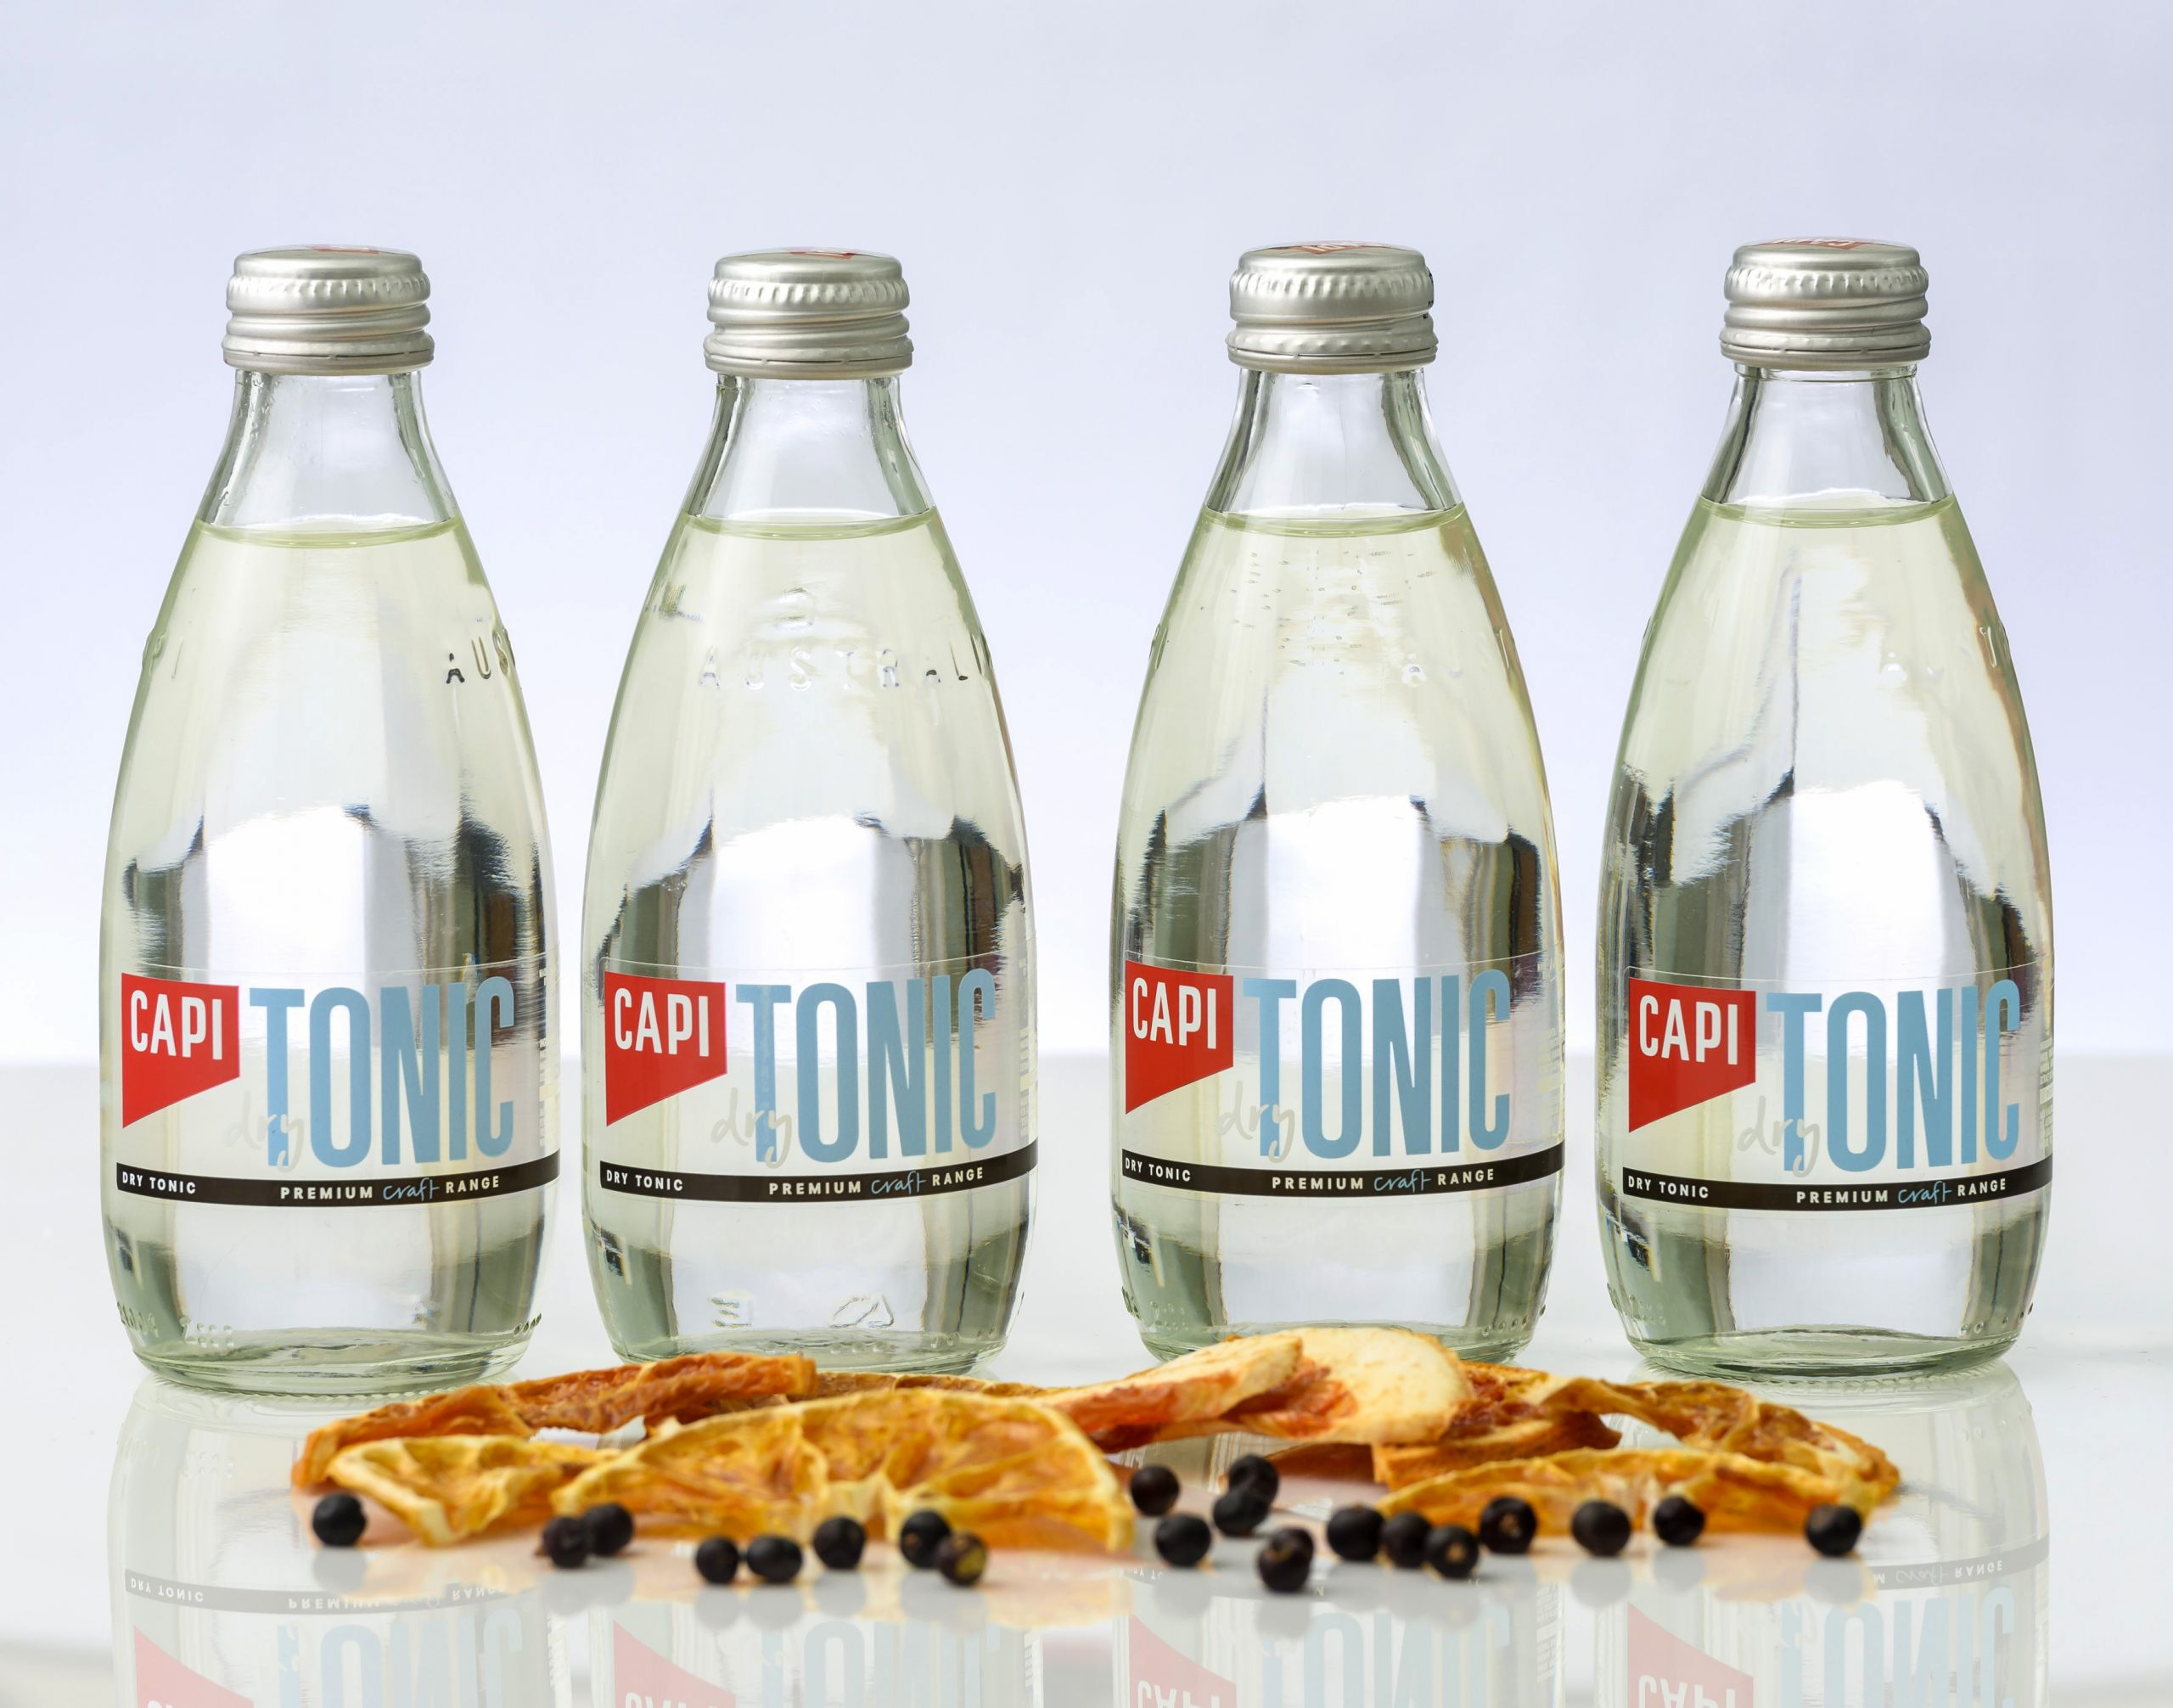 Four bottles of Capi Dry tonic